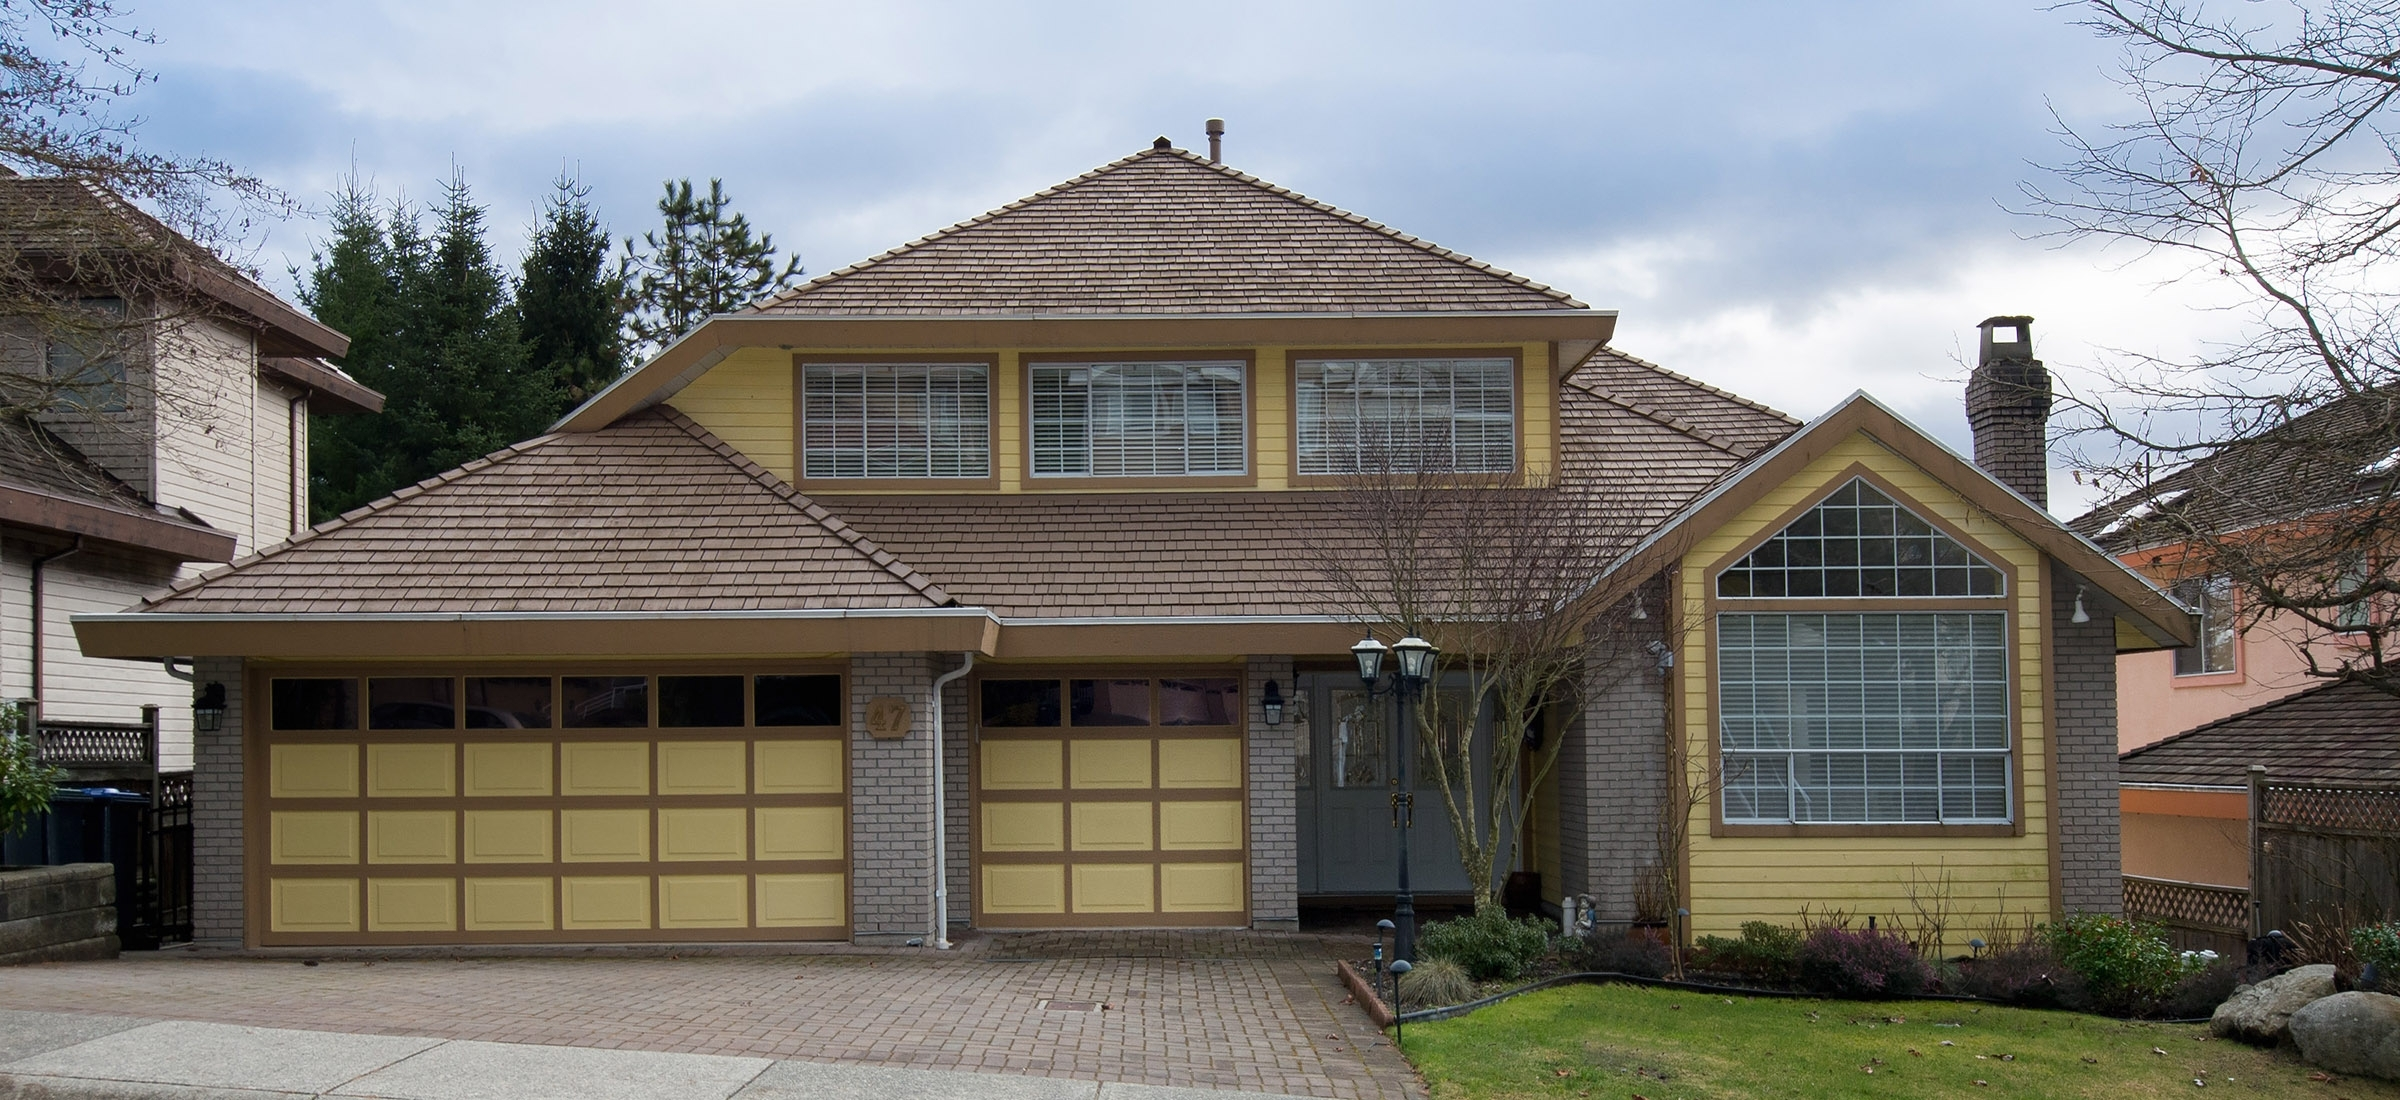 47 Timbercrest Drive, Heritage Mountain, Port Moody